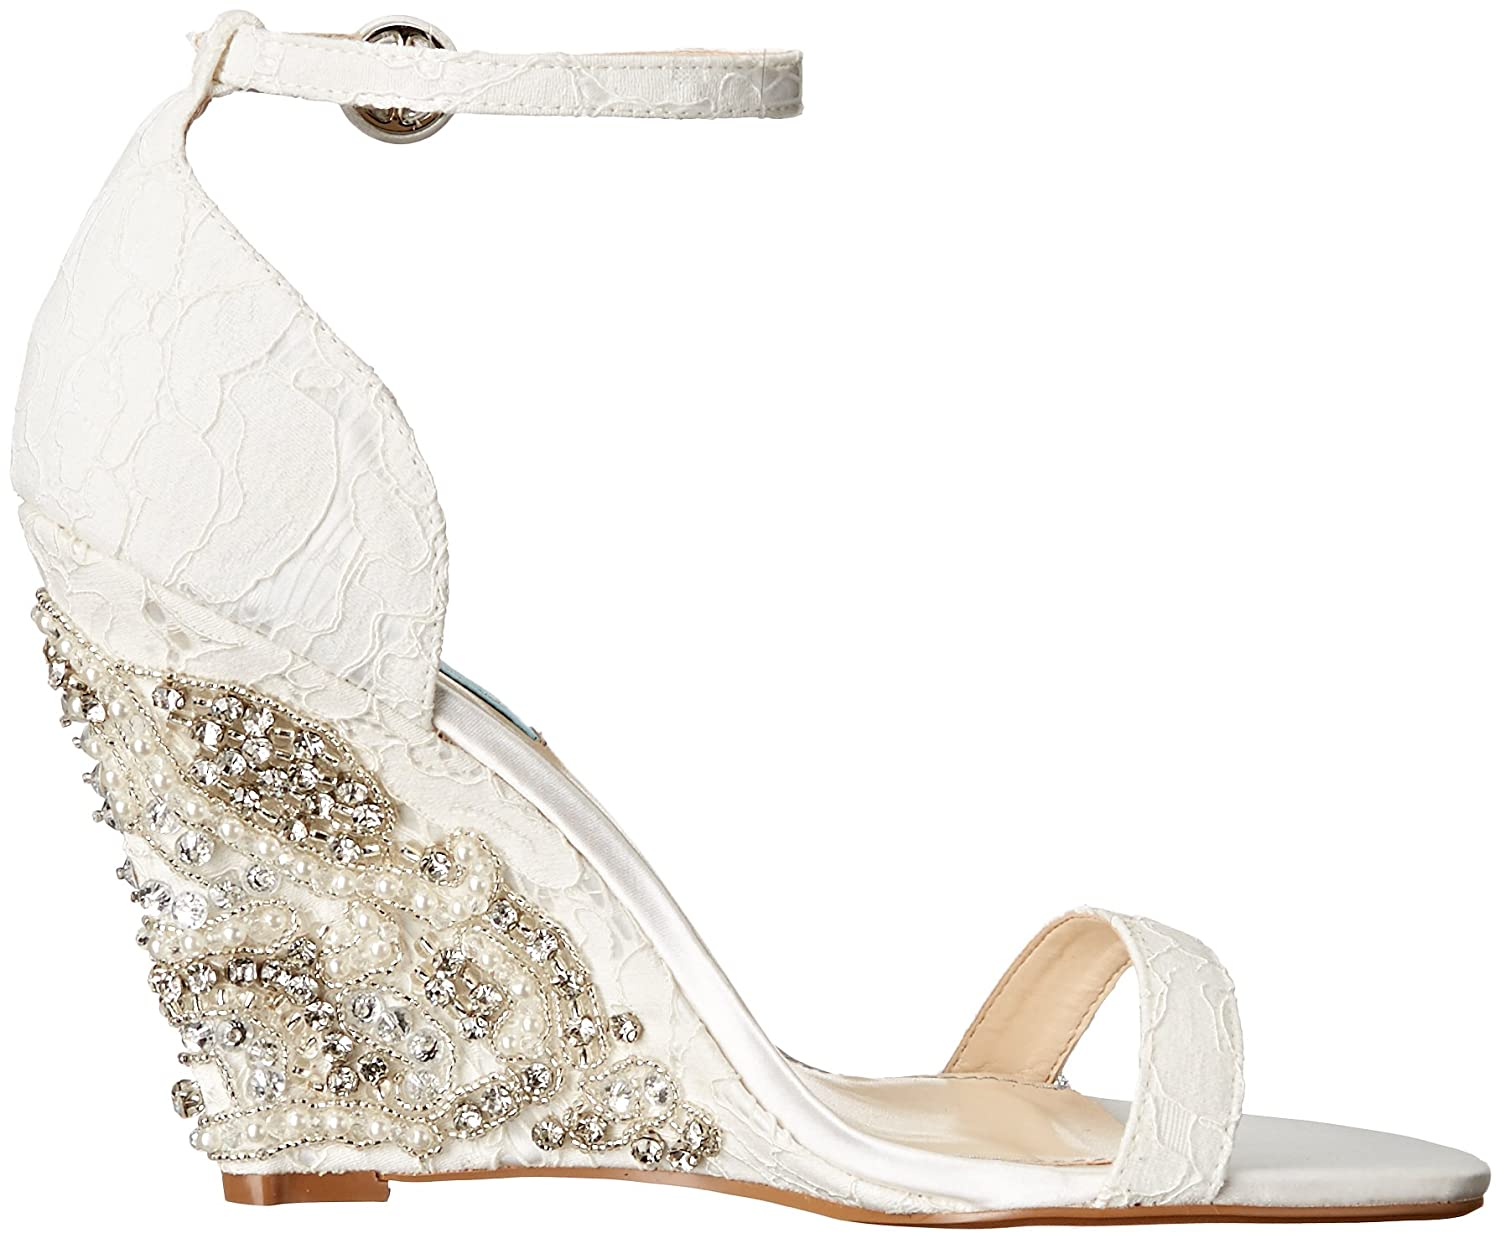 Blue by Betsey Johnson Alisa Lace and Satin Wedge Sandals YBJ21sJ